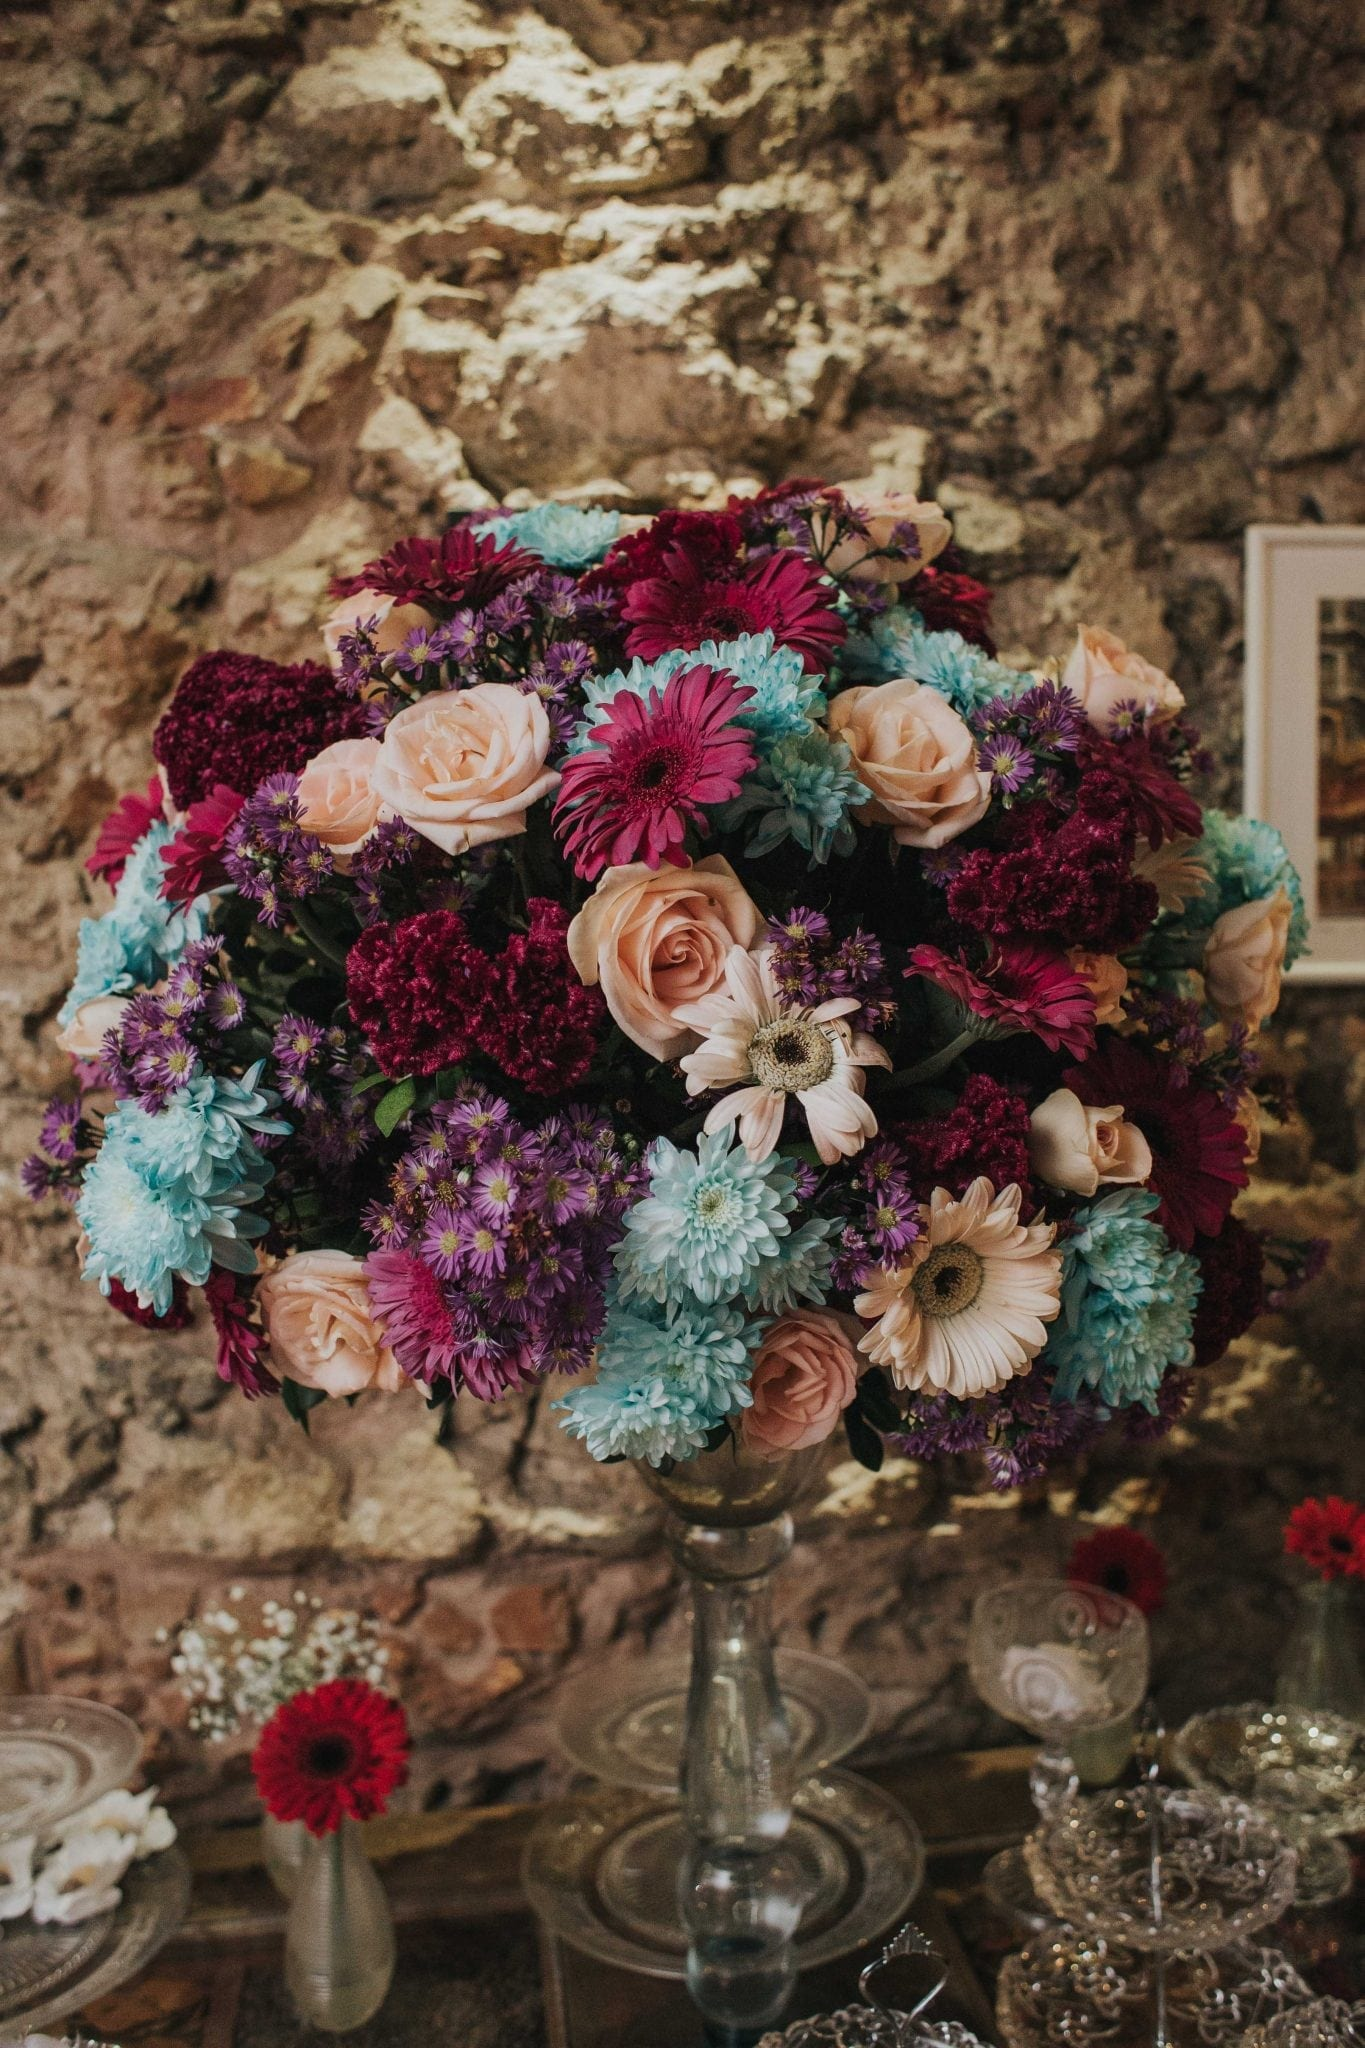 Why We Decided to Use Artificial Flowers vs Real Flowers